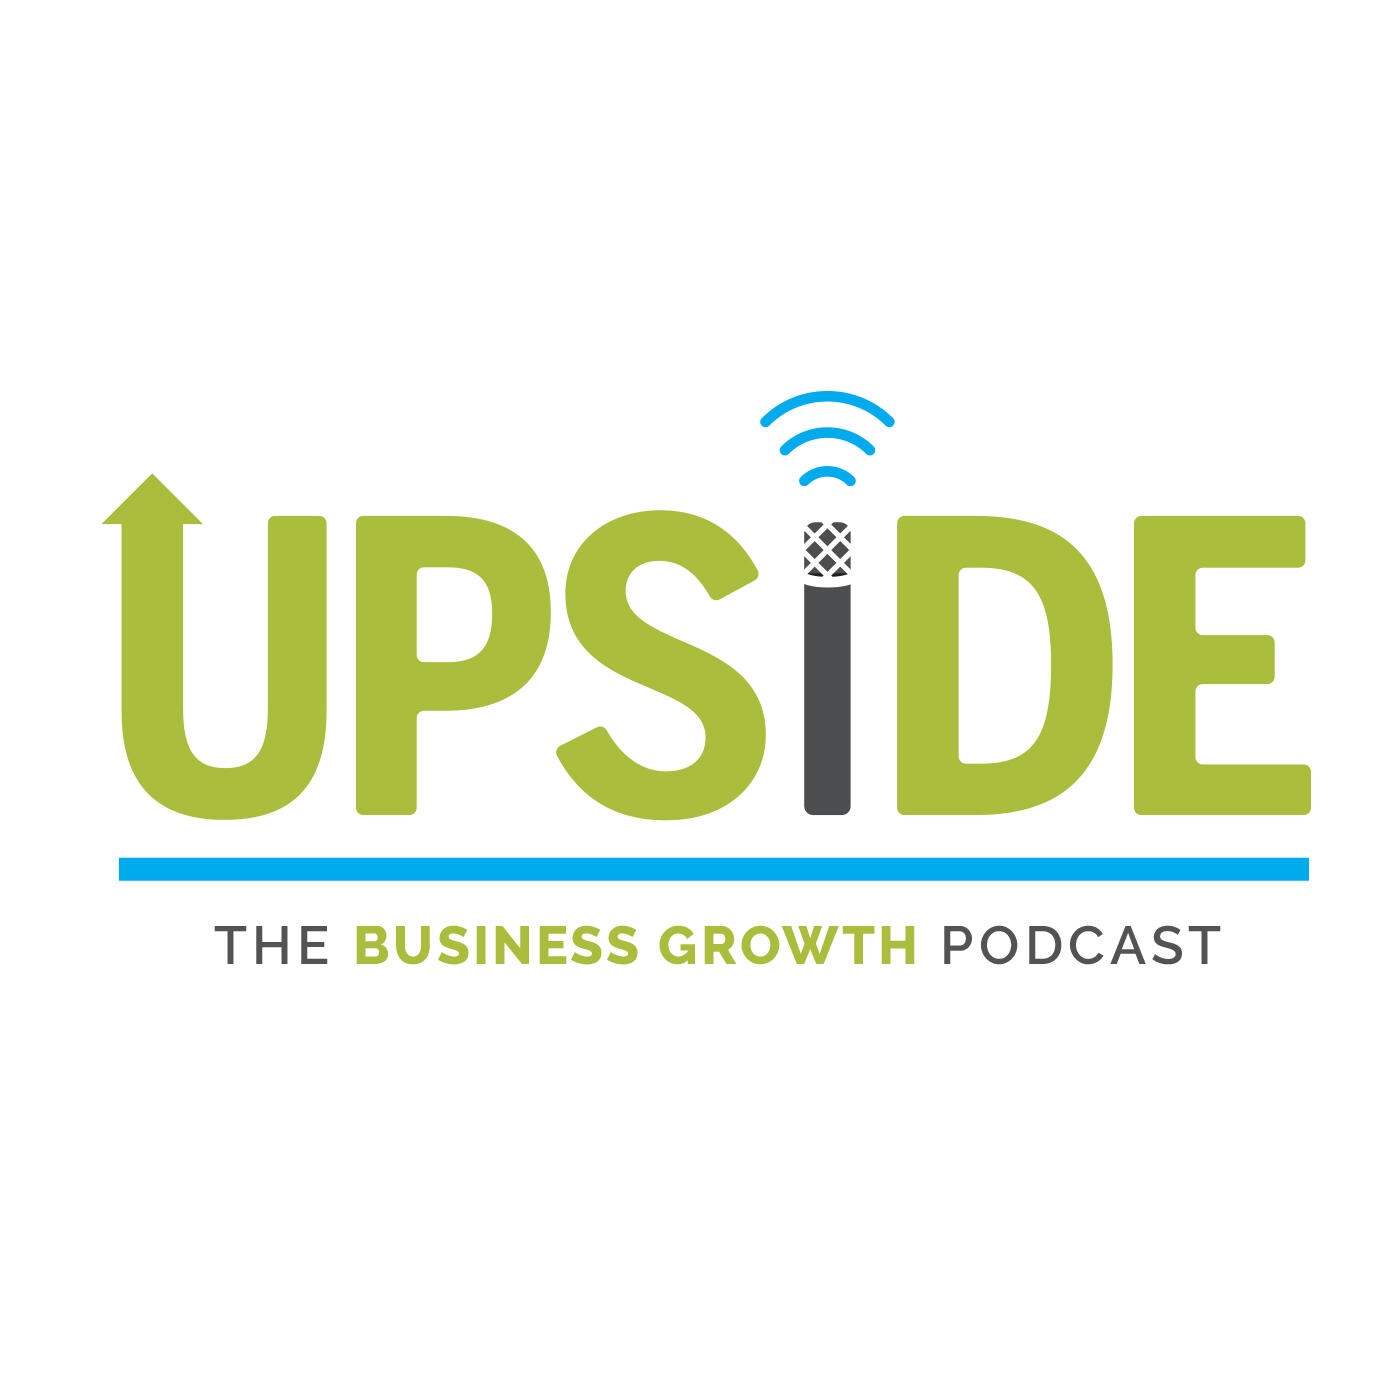 Upside: The Business Growth Podcast